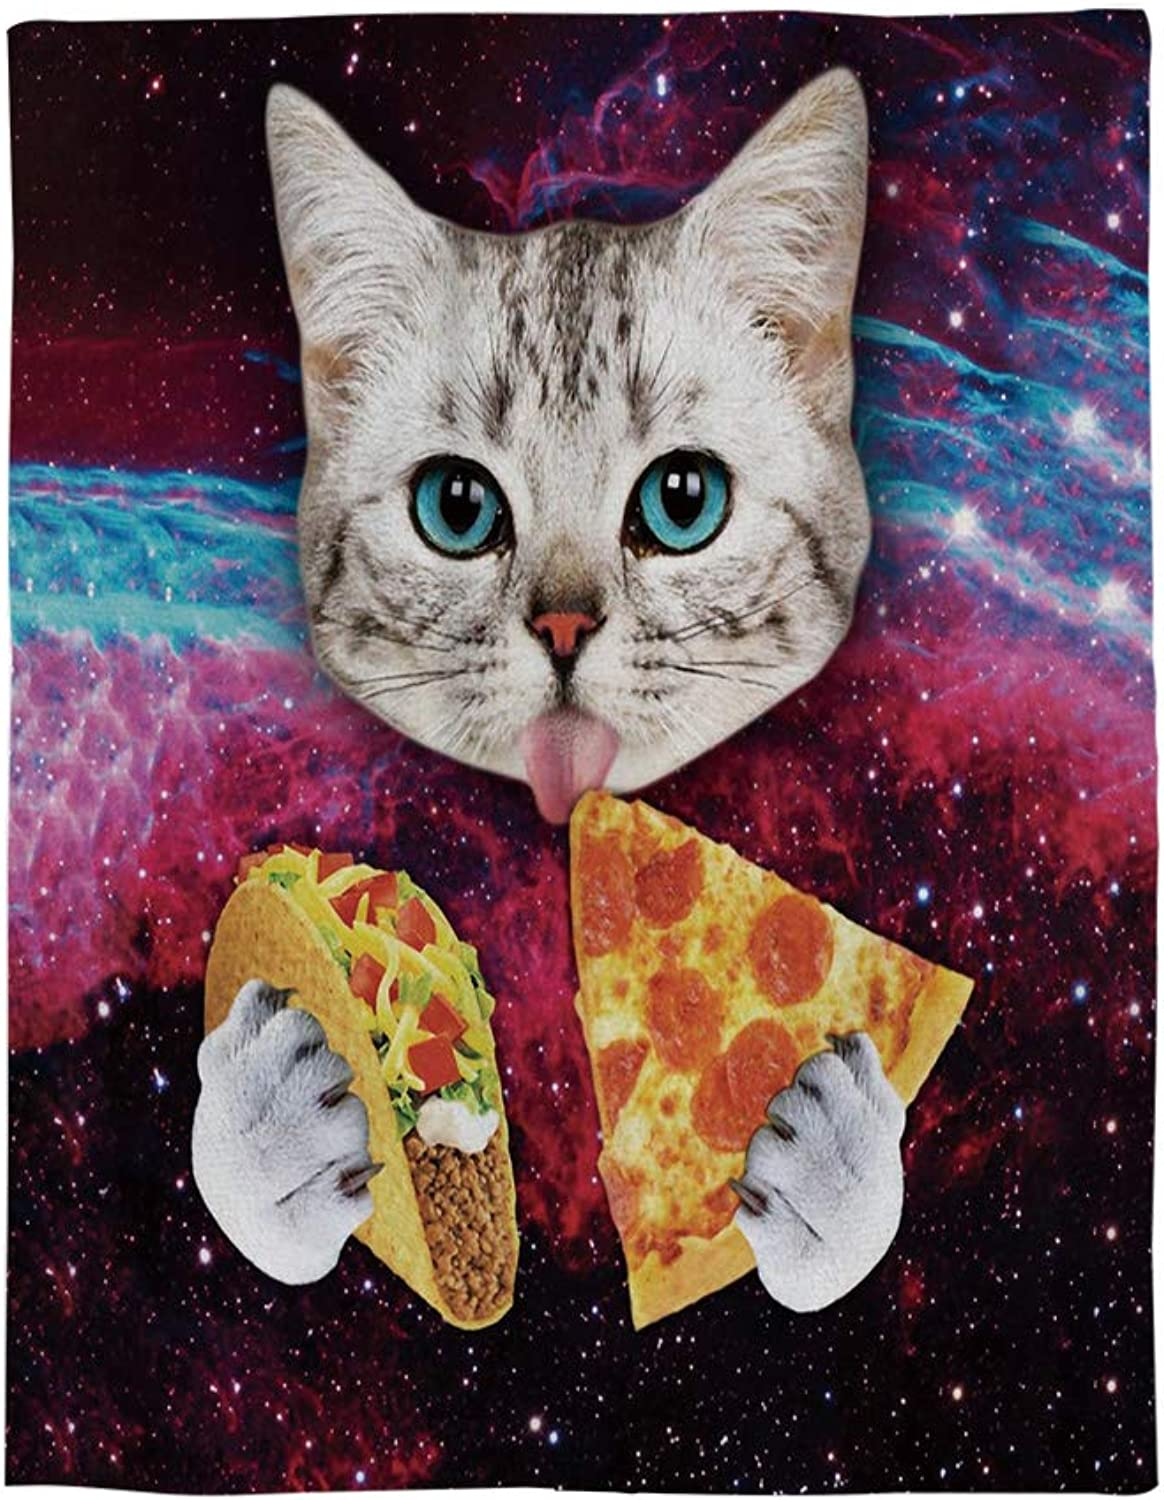 Beauty Decor Funny Bed Blanket 50x60 inch Flannel Blankets Space Cat Eat Pizza Starry Sky Backdrop Throw Blanket for Bedroom Living Rooms Sofa Throw Cover